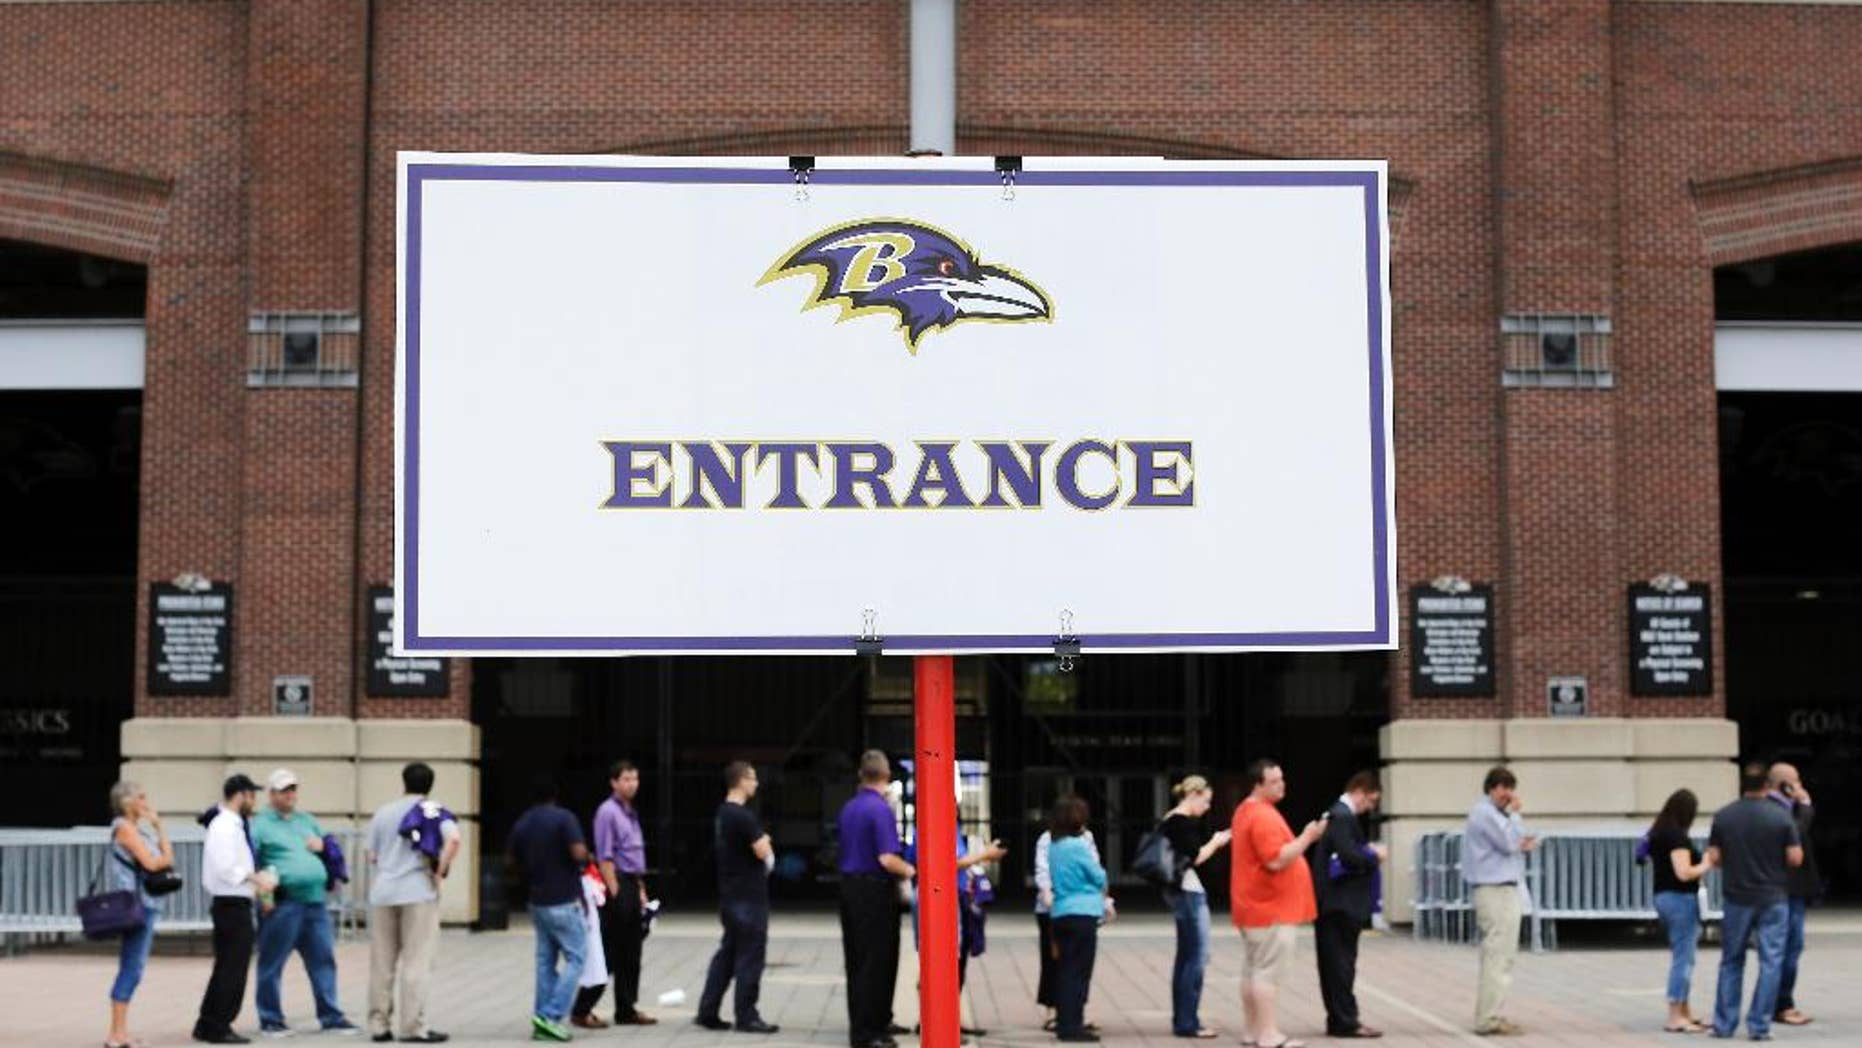 Football fans wait in line to trade in their former Baltimore Ravens running back Ray Rice jerseys, Friday, Sept. 19, 2014, at M&T Bank Stadium in Baltimore. The Ravens offered fans a chance to trade in their Rice jerseys for those of another player after he was cut by the team and suspended indefinitely by the NFL for domestic violence. (AP Photo/Patrick Semansky)